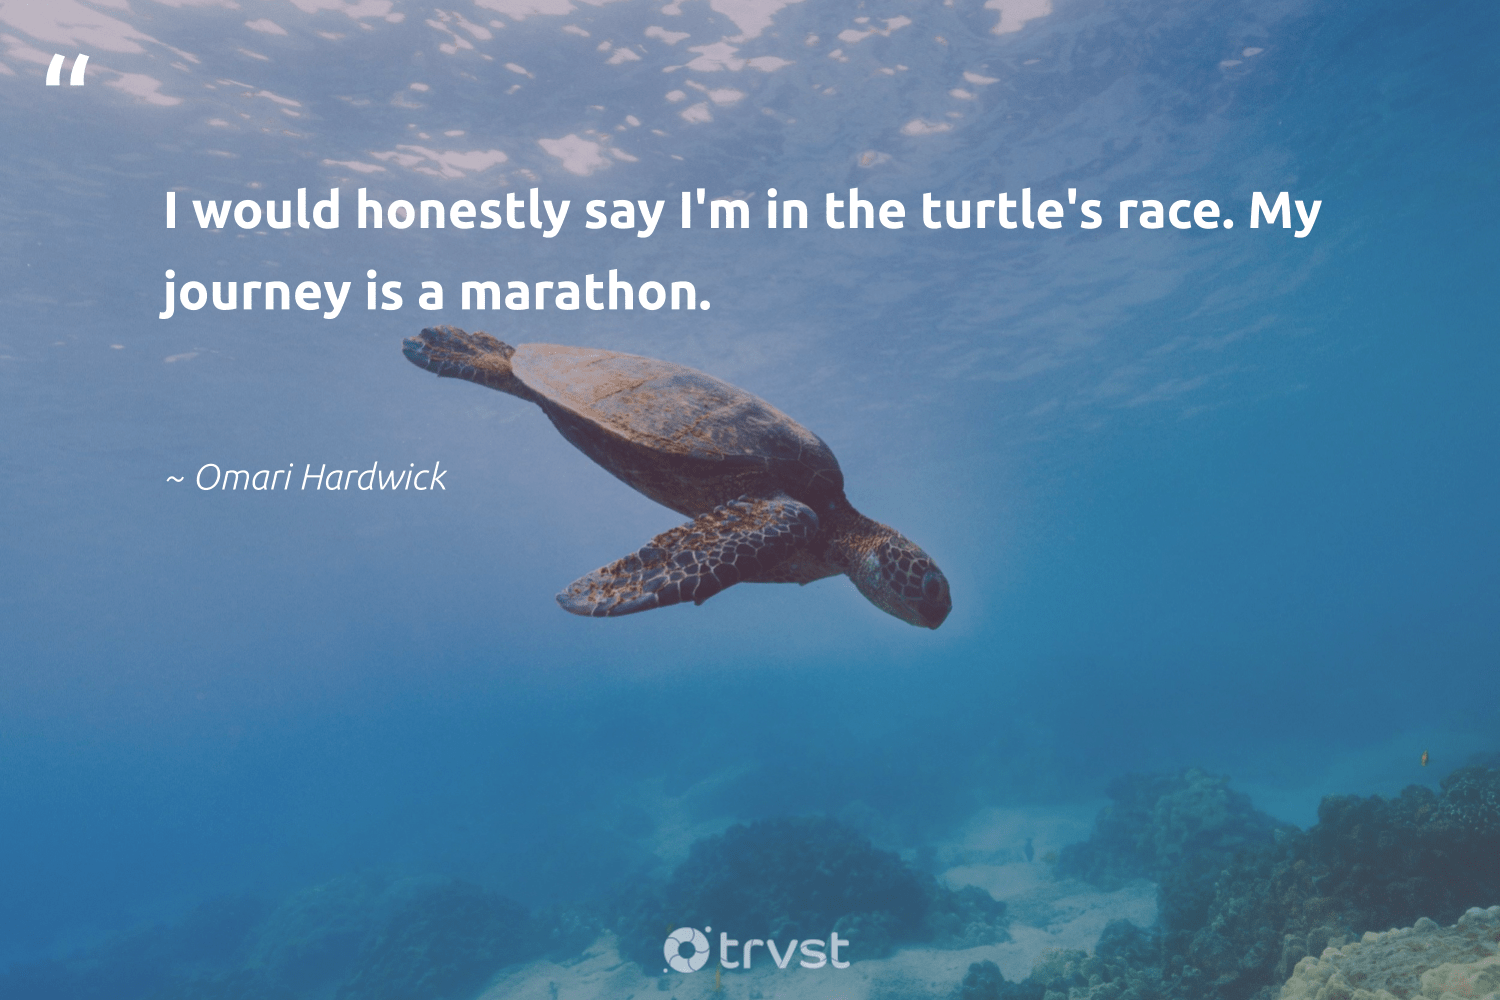 """I would honestly say I'm in the turtle's race. My journey is a marathon.""  - Omari Hardwick #trvst #quotes #turtles #savetheoceans #dosomething #sustainablefishing #beinspired #oceans #thinkgreen #marinelife #bethechange #oceanconservation"